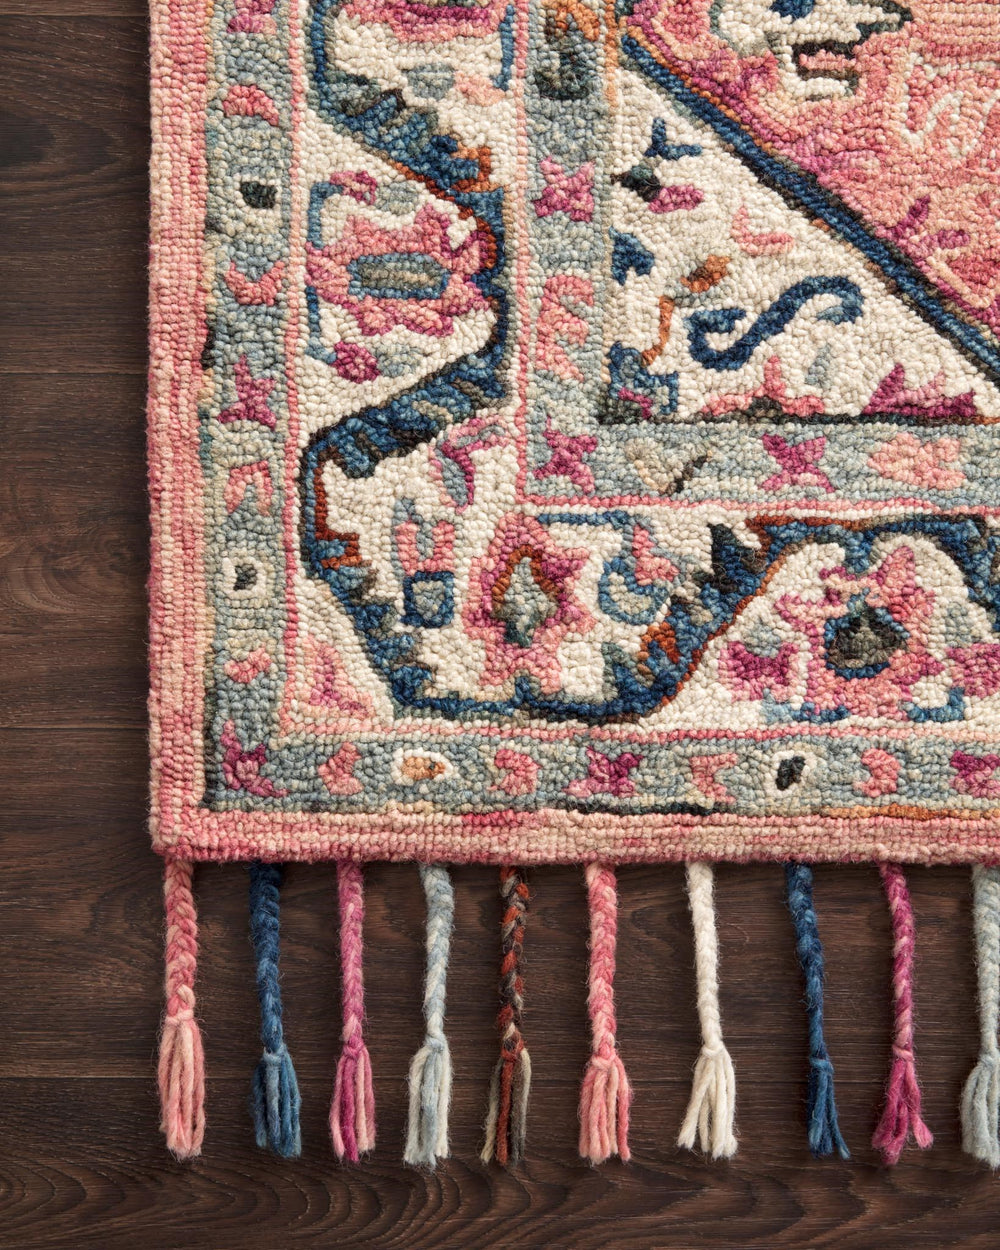 Hooked of 100% wool by skilled artisans in India, this collection of transitional rugs is soft to the touch and displays whimsical floral motifs complemented by luxurious, braided tassels to perfectly complement any space.  Hooked 100% Wool ELK-04 Pink/Multi